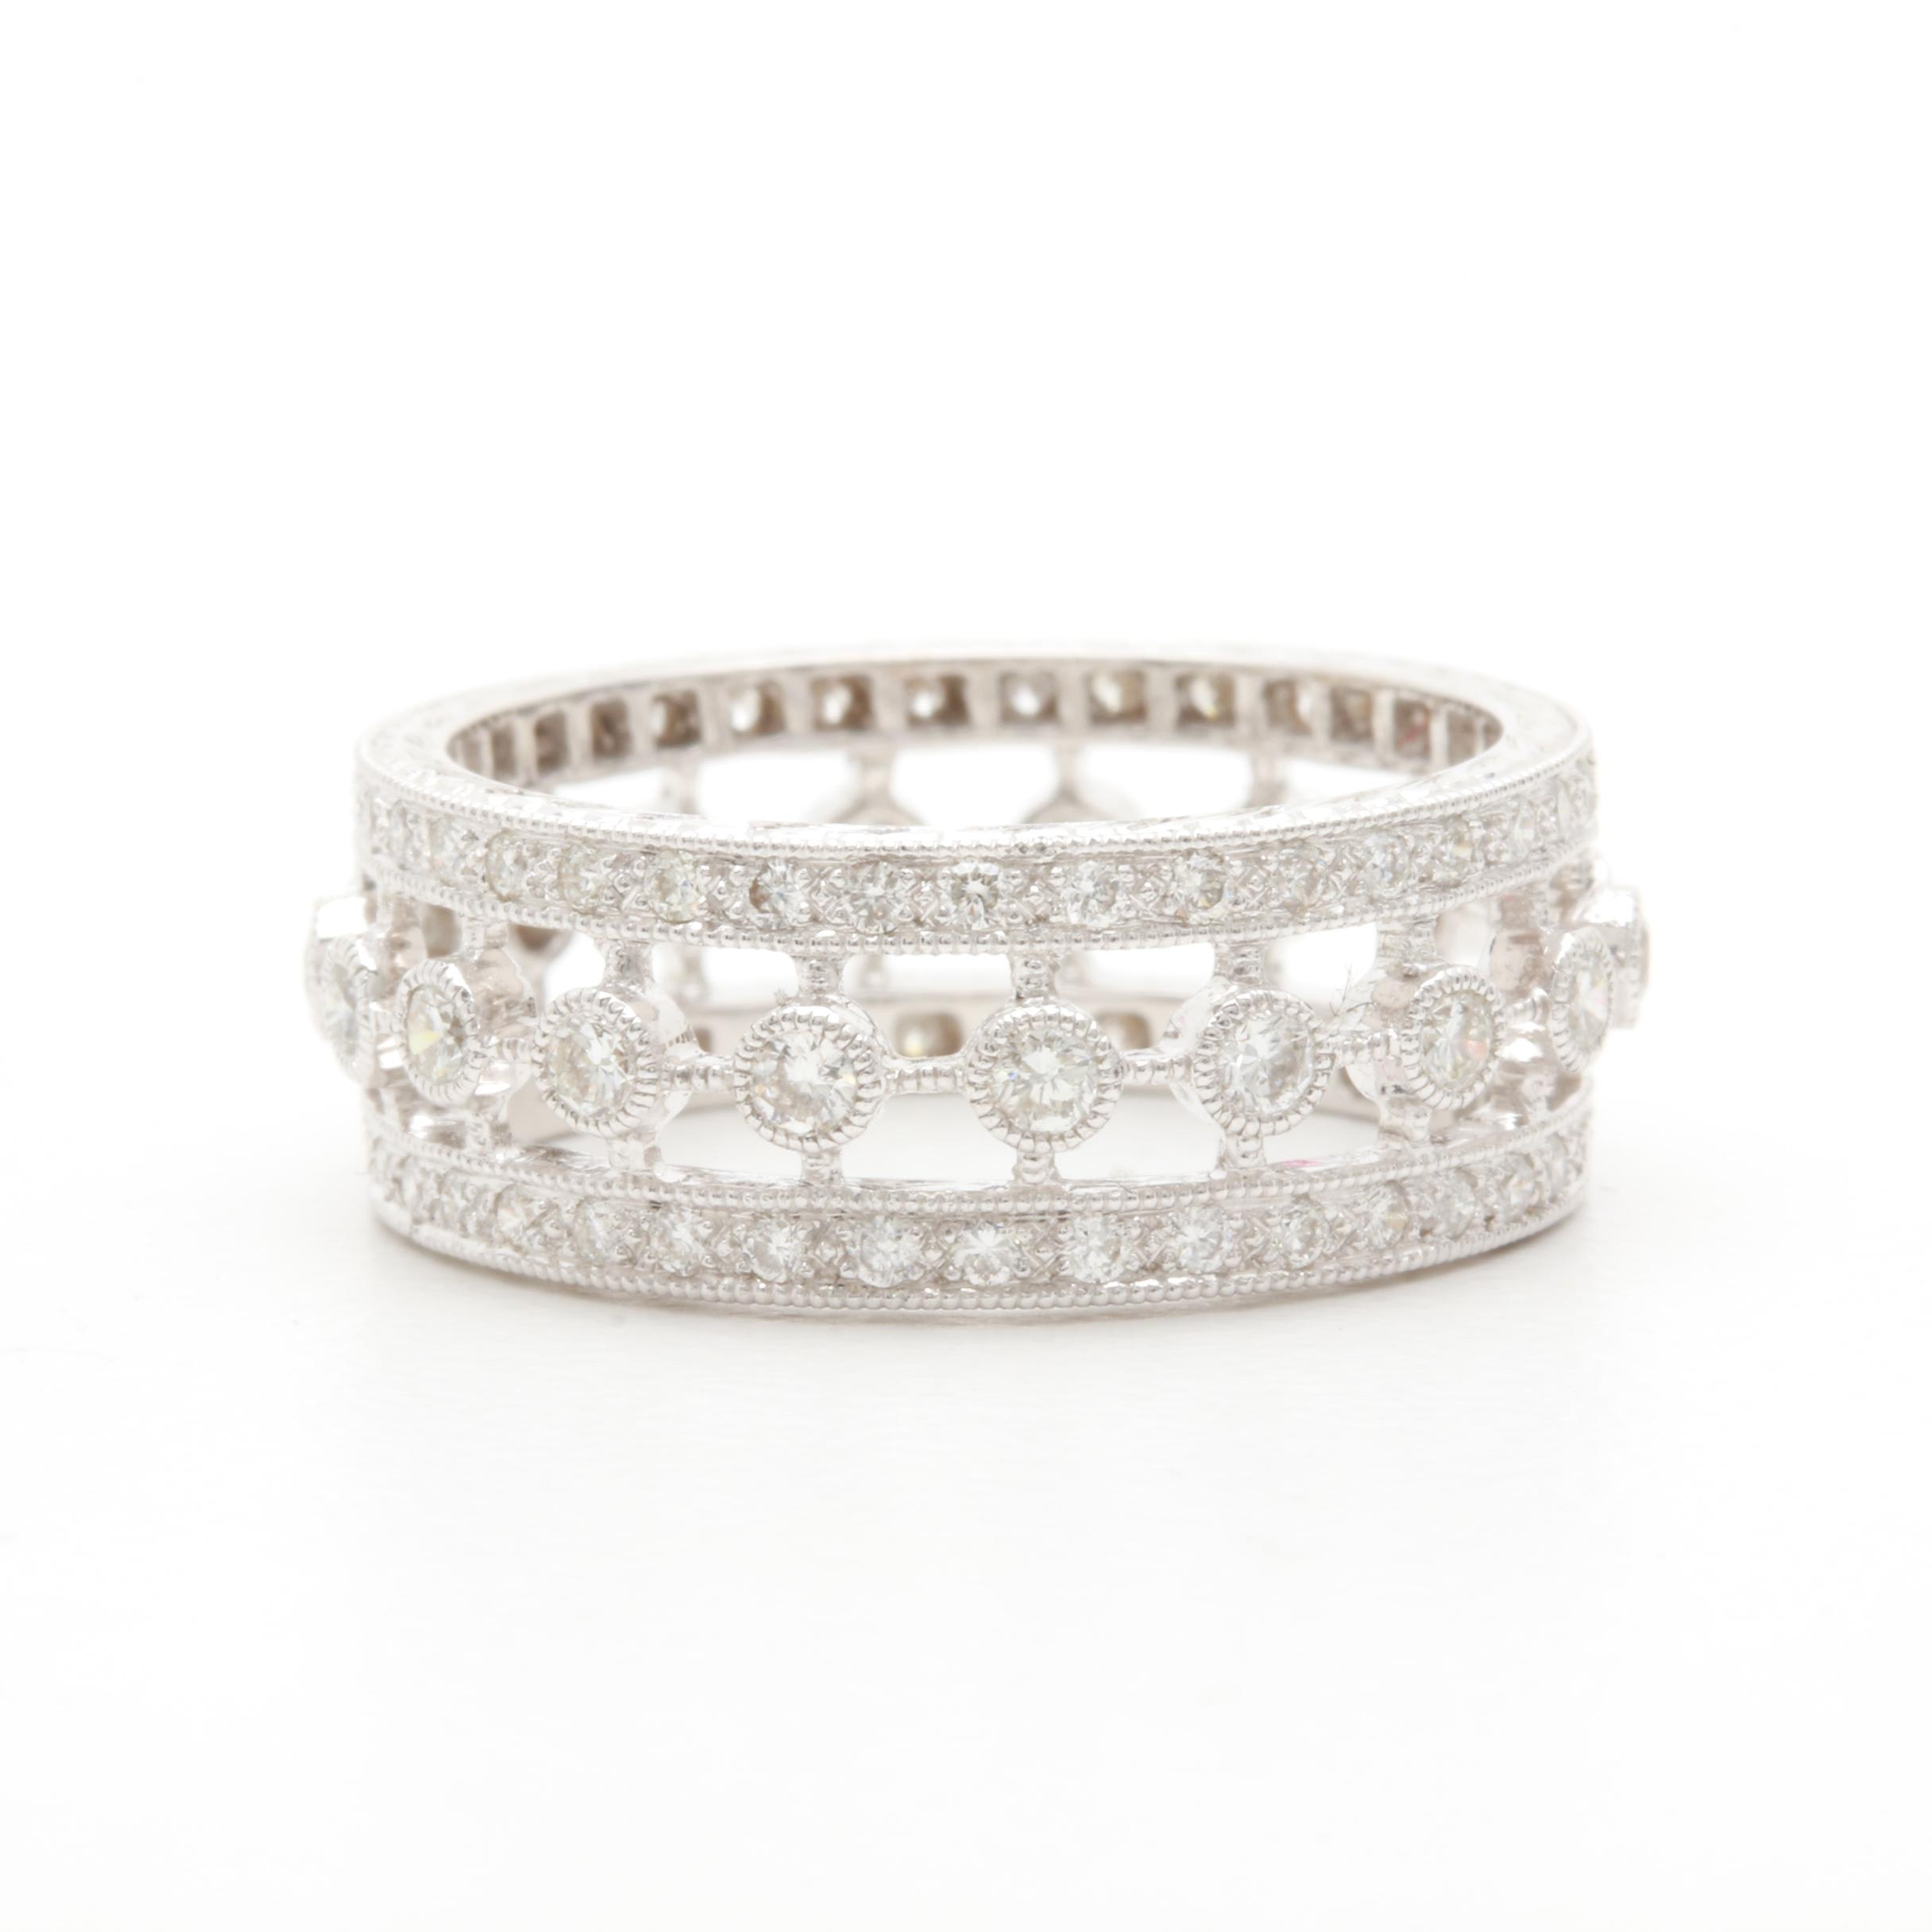 Barry Kieselstein-Cord 18K White Gold and Diamond Ring